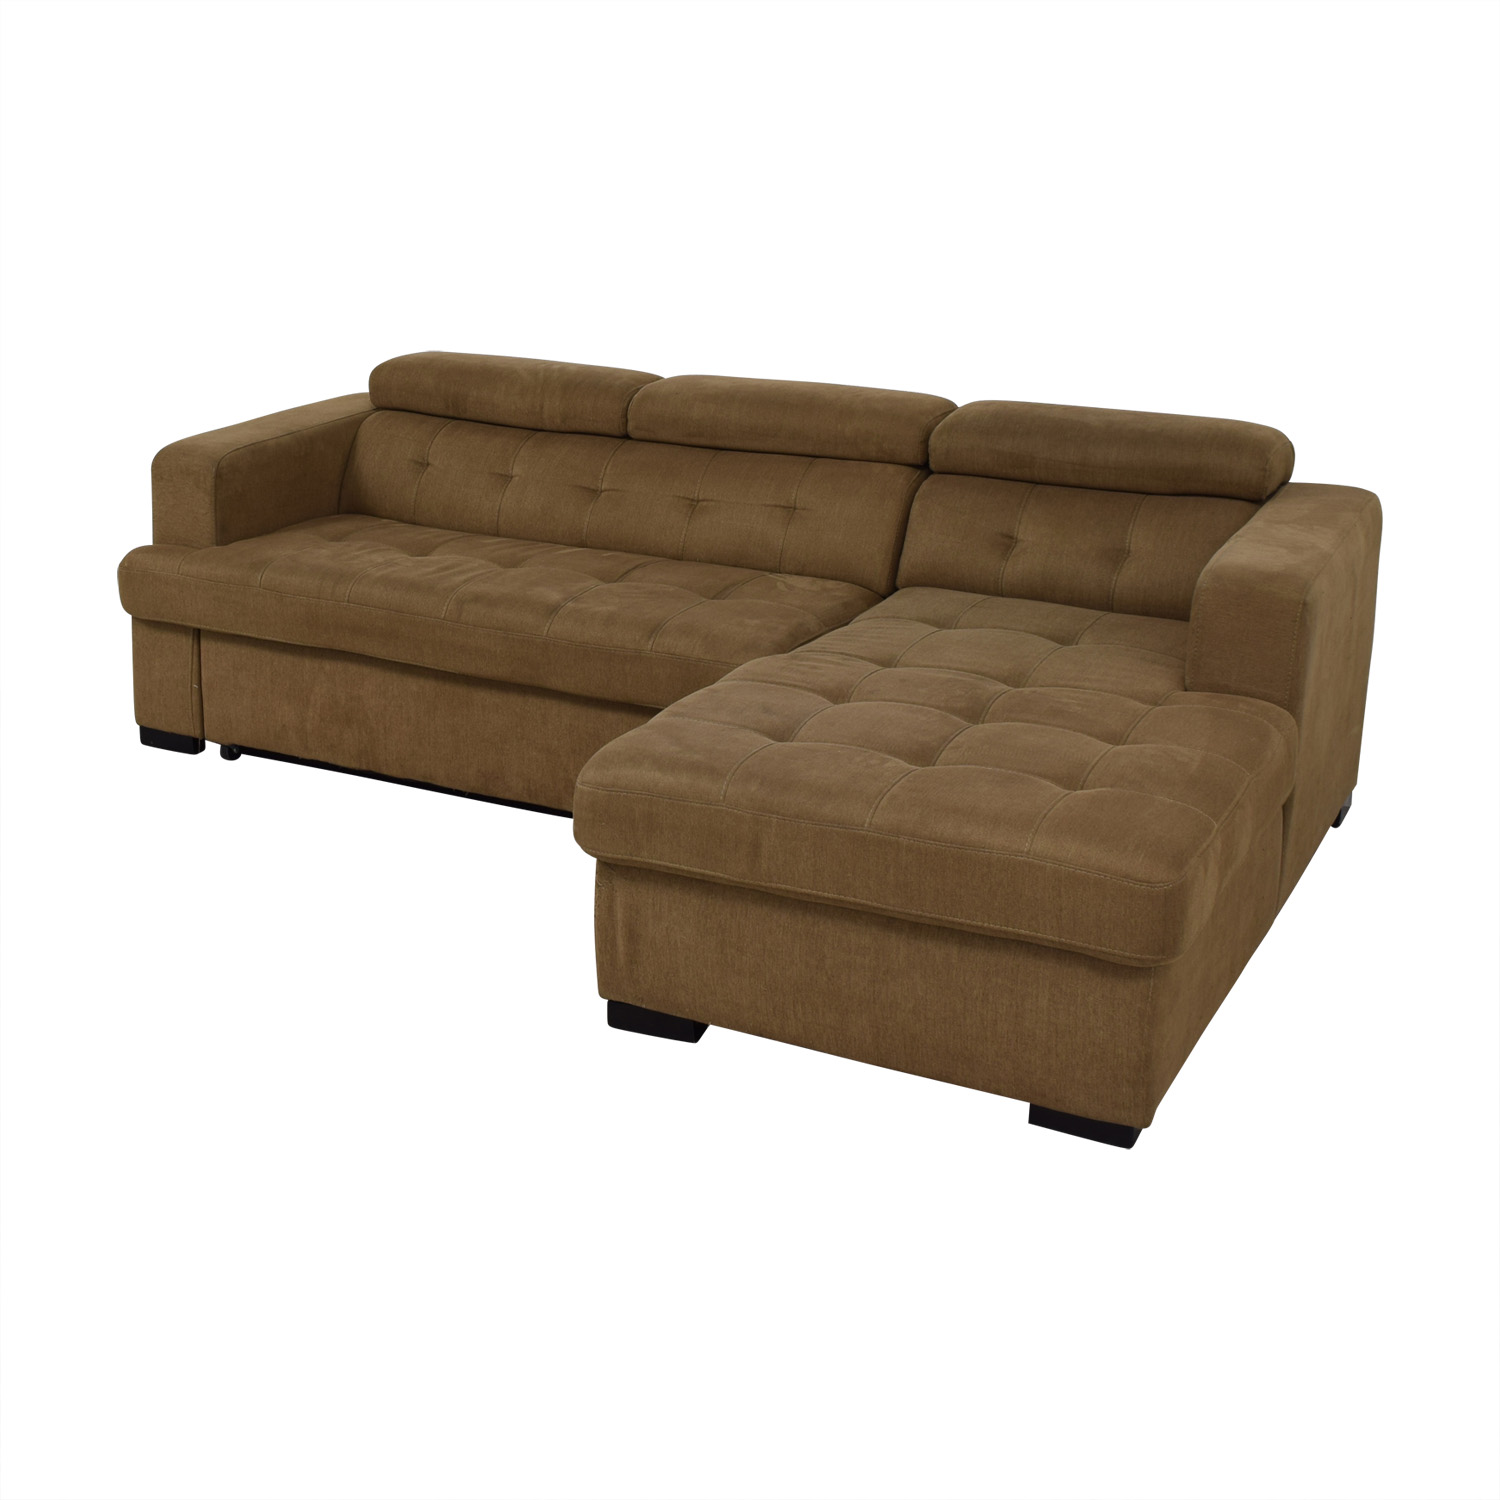 Bob's Furniture Bob's Furniture Brown Sectional with Chaise Storage Sofas